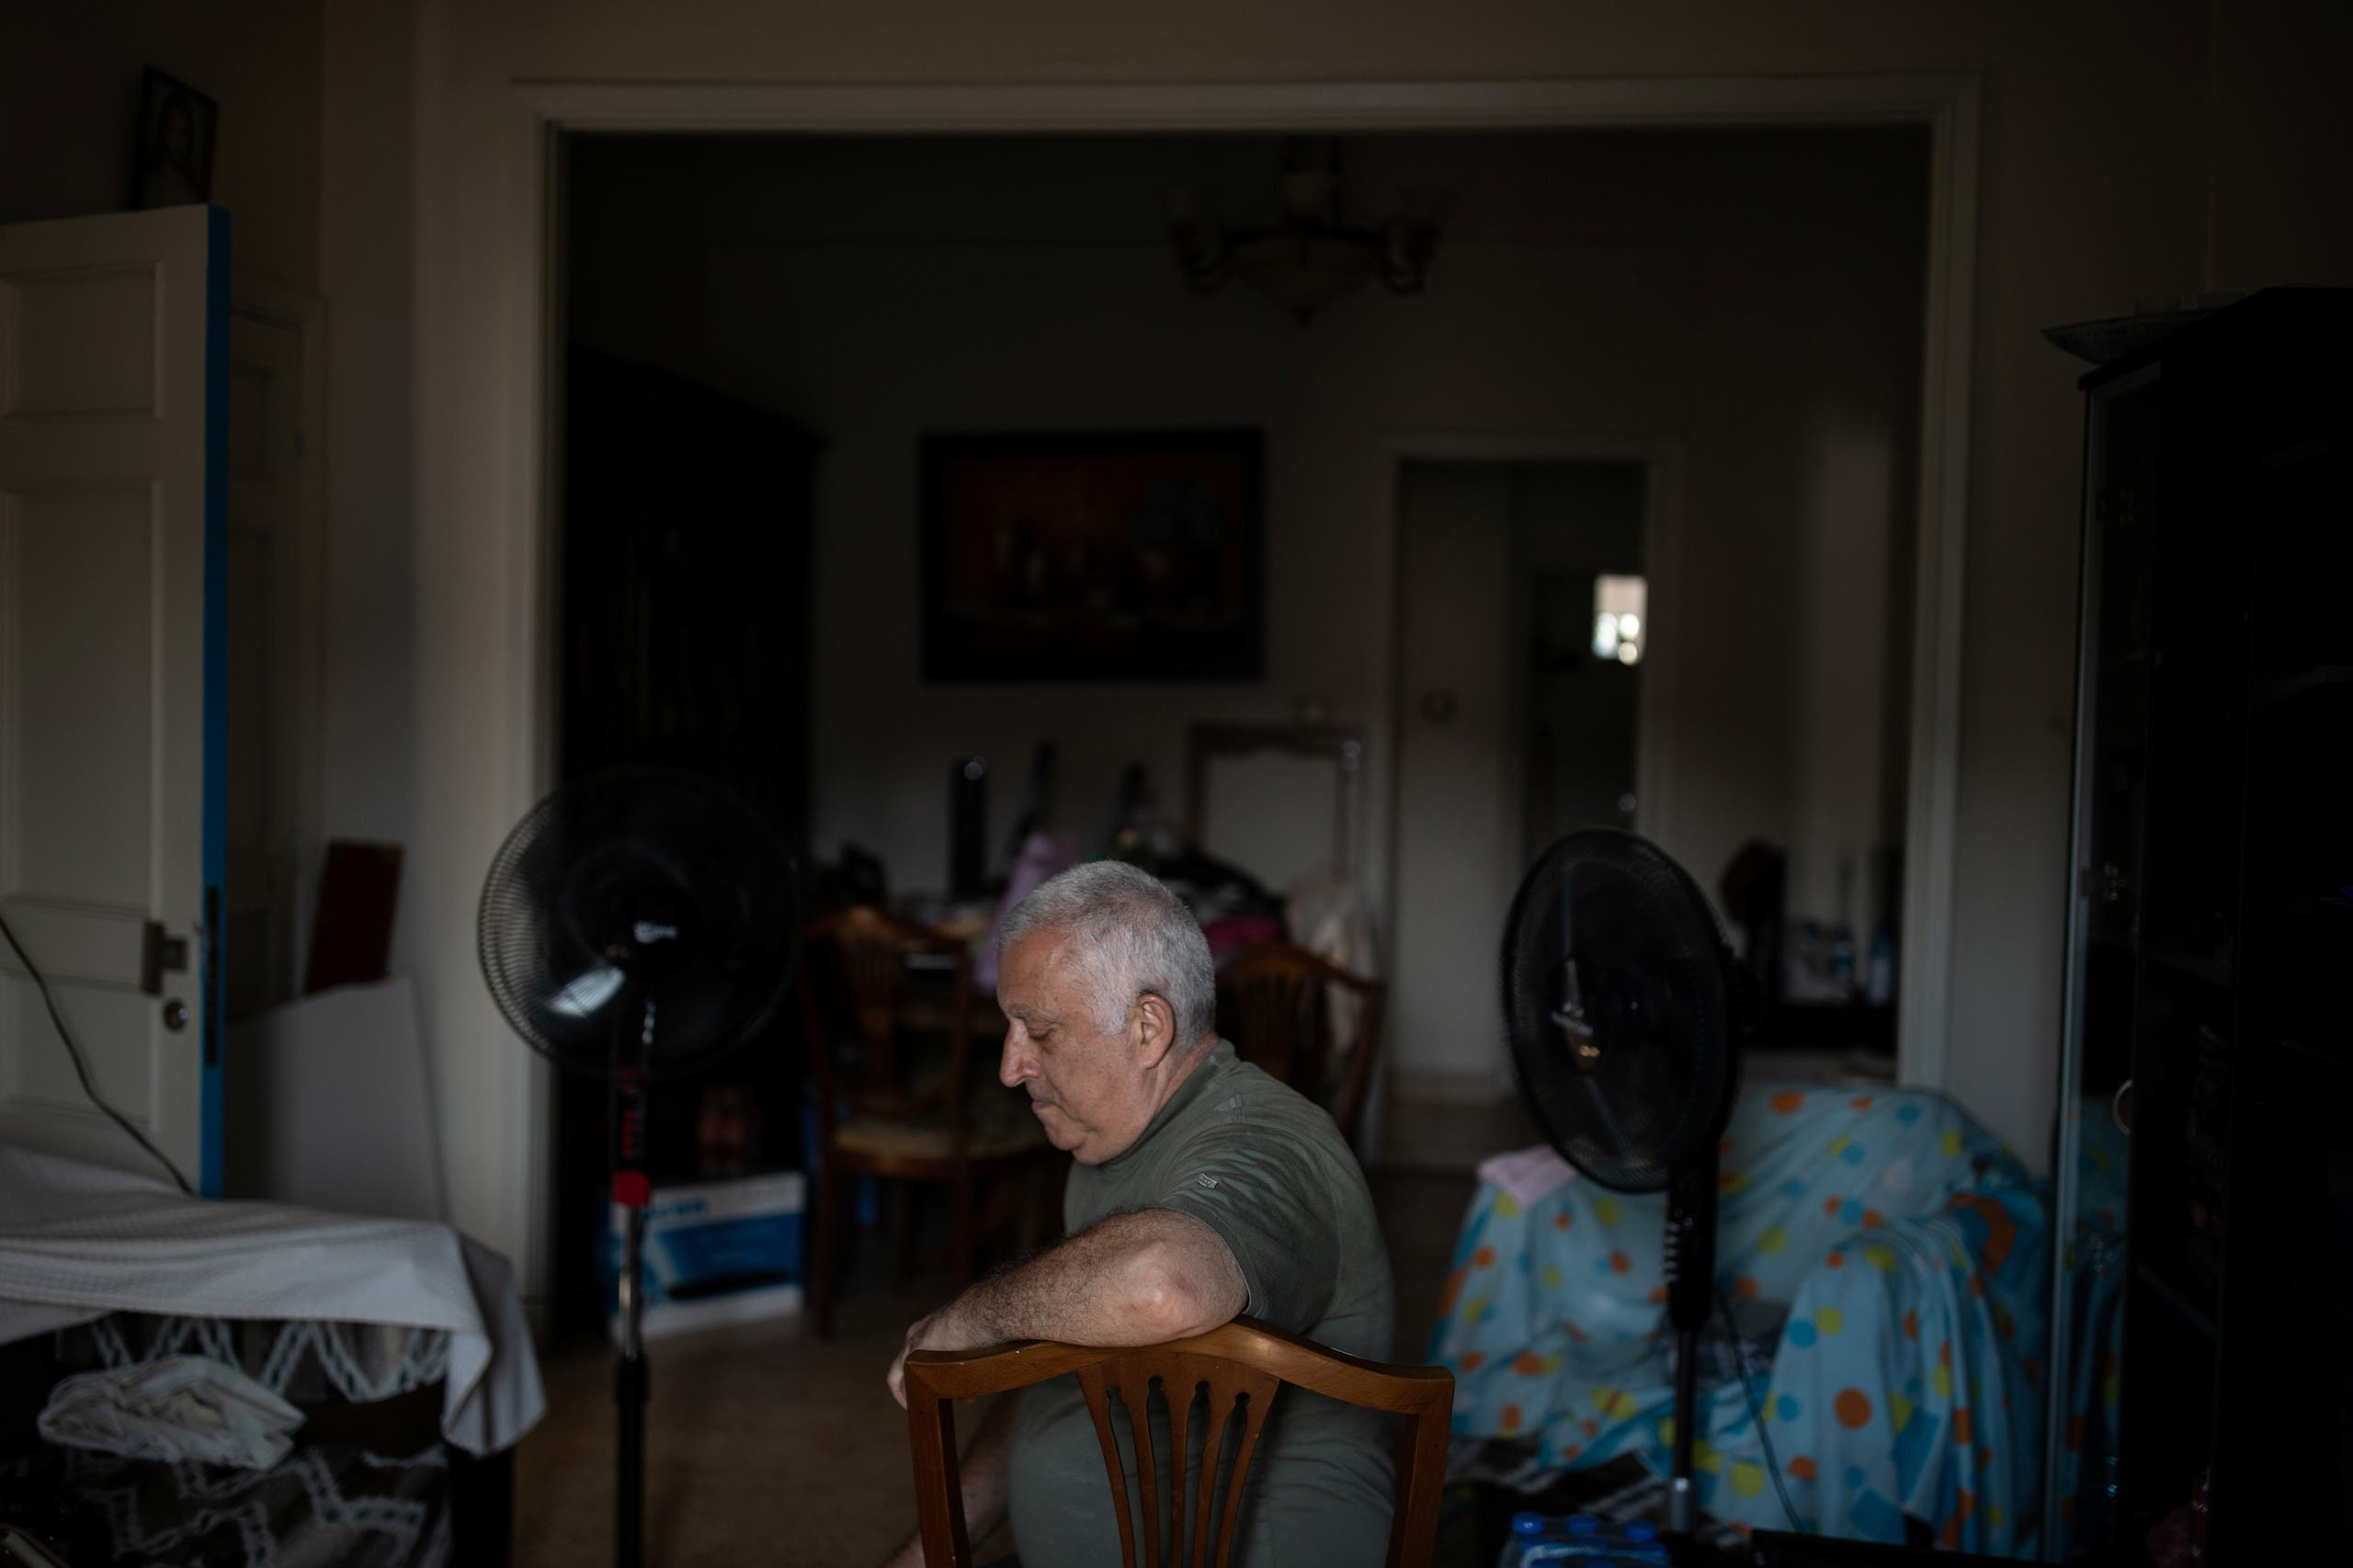 Tony Matar, 68, sits on a chair in his living room at his home that was damaged by an explosion at the Beirut port, in the neighbourhood of Karantina, Beirut. (Reuters)